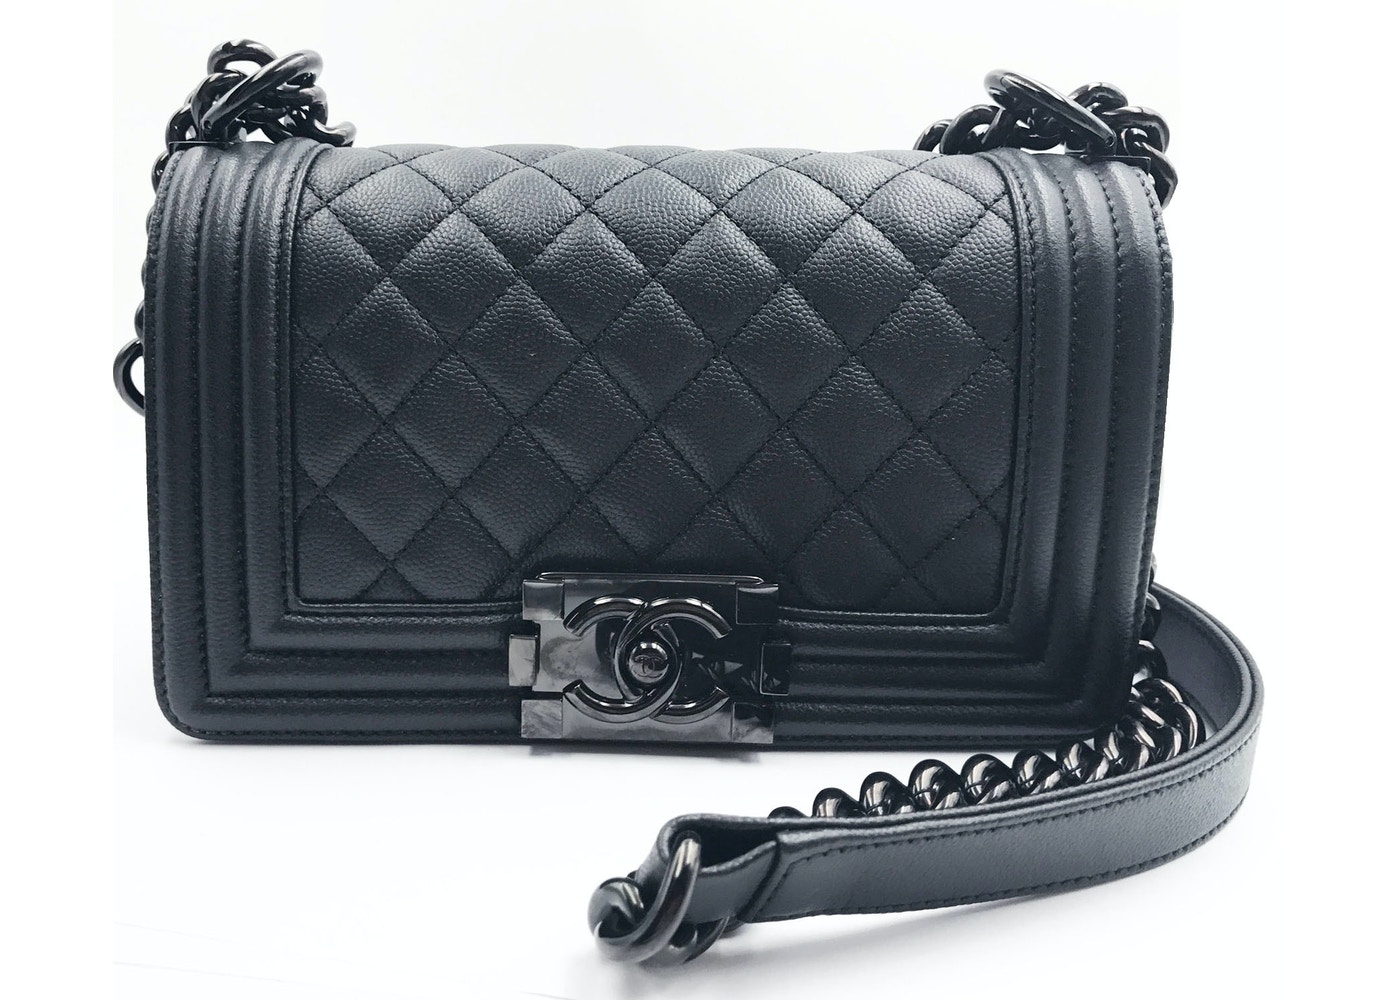 42fde0462e28da Chanel Boy Flap Quilted Small So Black